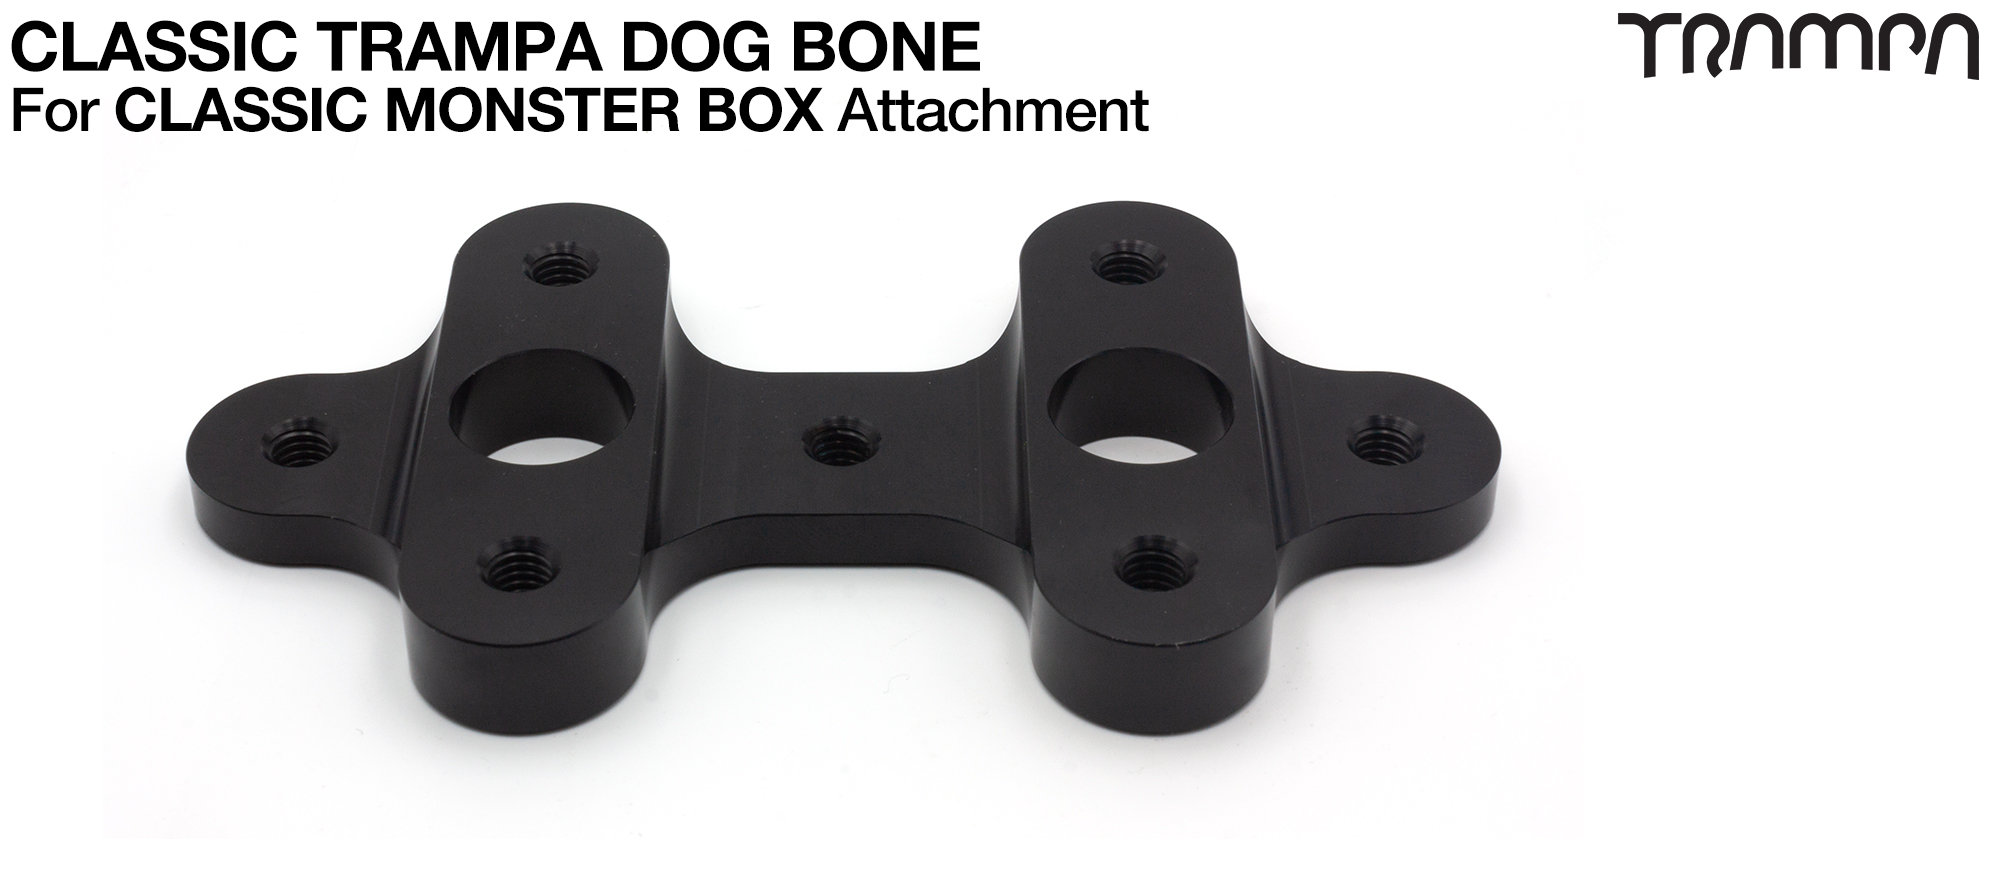 Classic Monster Box DOG BONE is used to mount the Classic Monster box securely to the deck